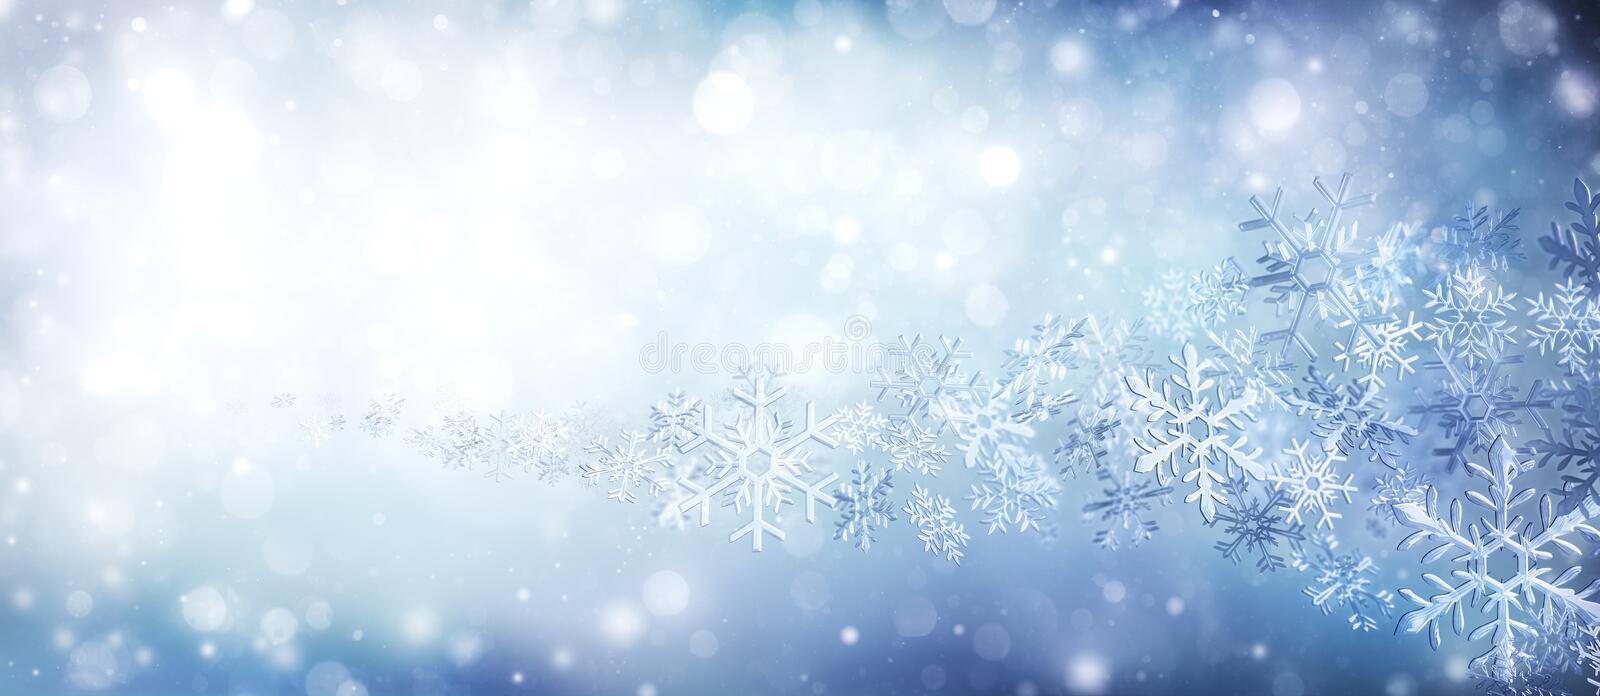 Crystal Of Snowflakes In Swirl. Wintertime royalty free stock image